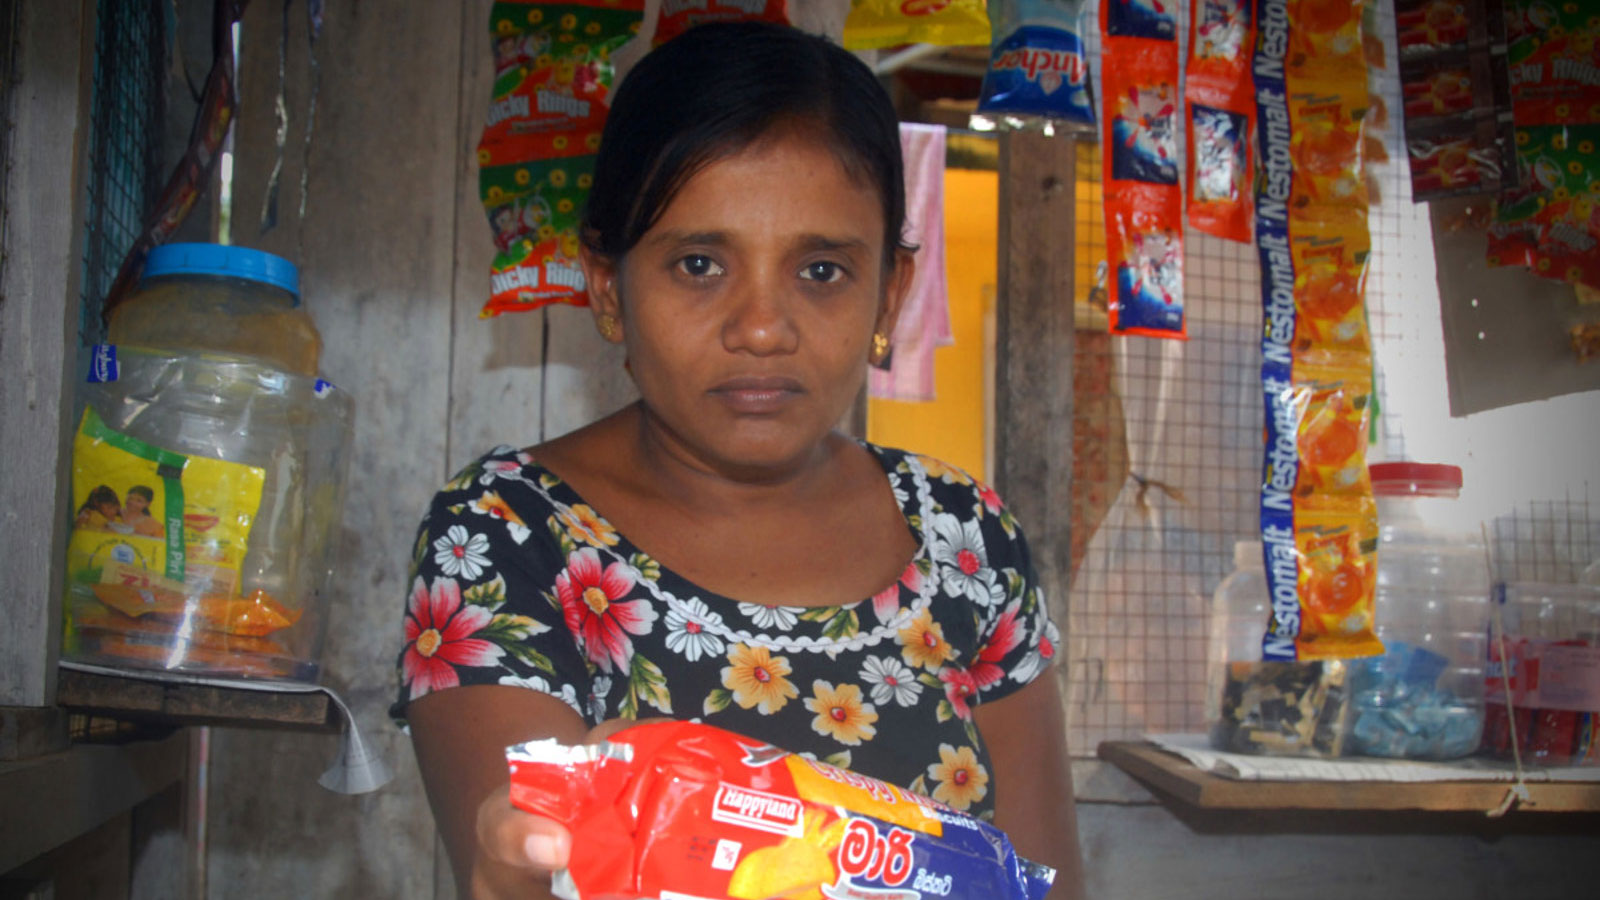 A-woman-with-a-disability-in-Sri-Lanka-sells-items-at-a-stand-thanks-to-support-she-received-from-HI's-inclusive-livelihoods-project